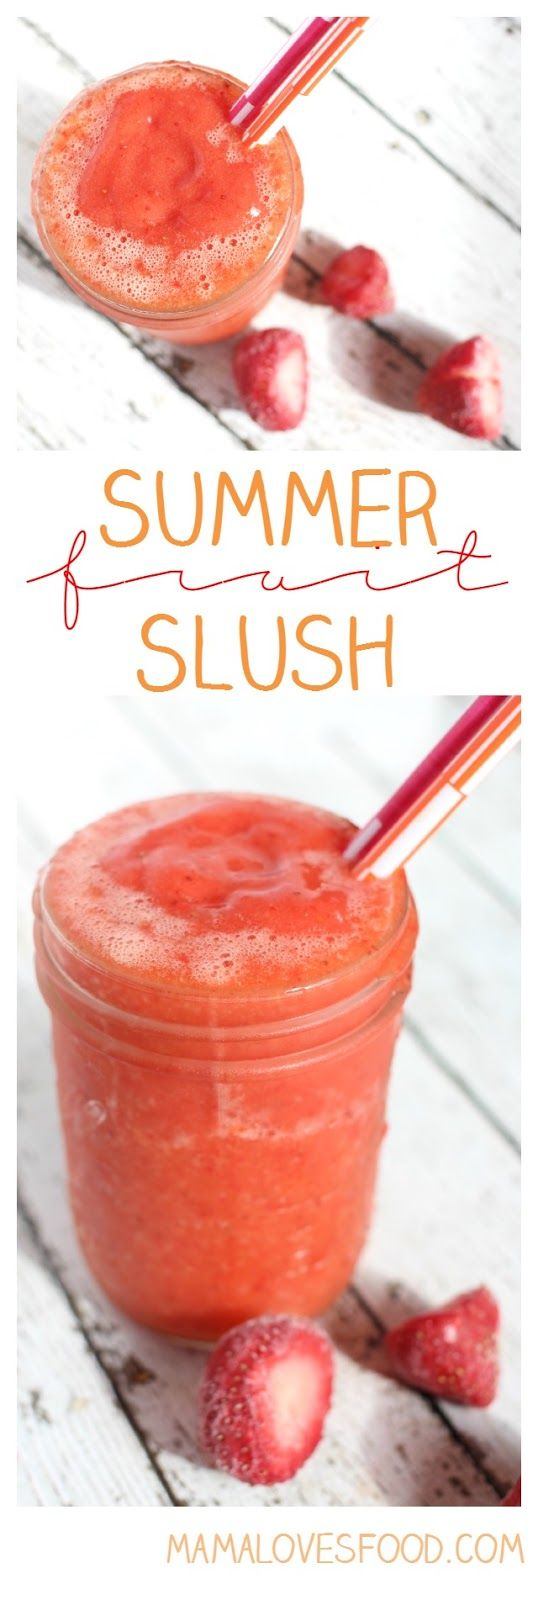 Summer Fruit Slushes - Only TWO Ingredients #WhereFunBegins #Ad @samsclub